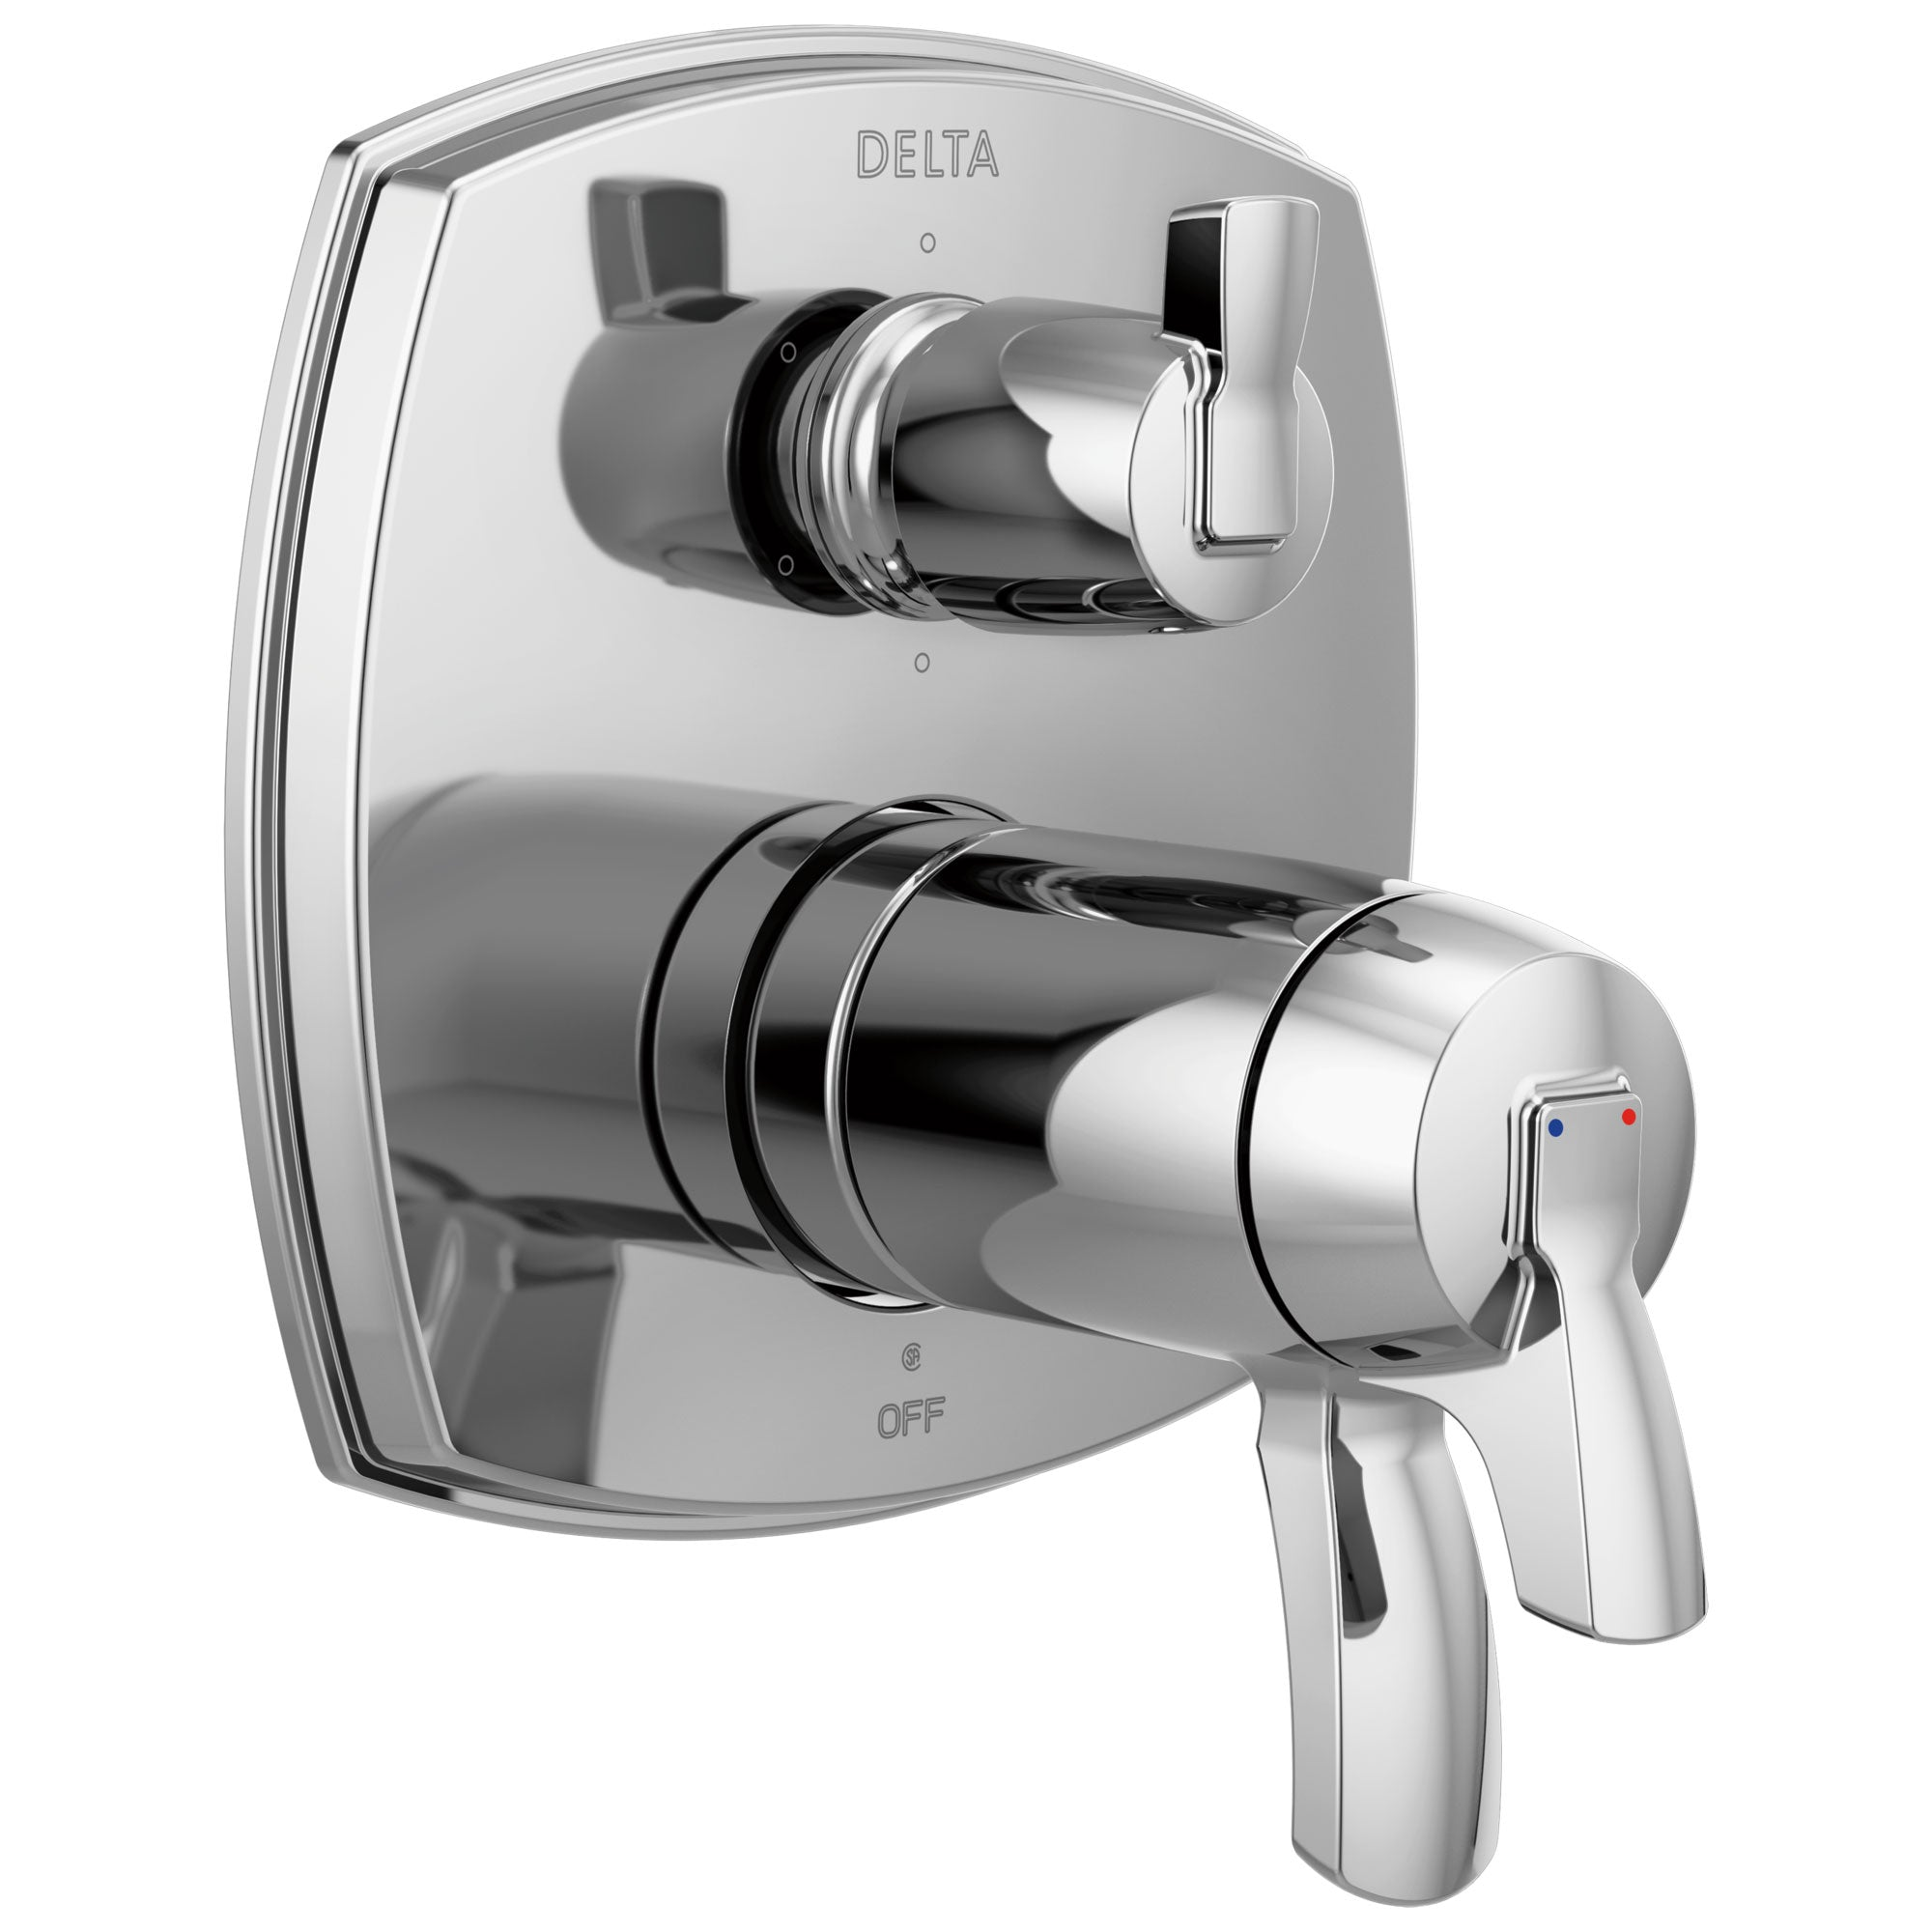 Delta Stryke Chrome Finish 17T Thermostatic Shower System Control with 6 Function Integrated Diverter Includes Valve and Handles D3664V